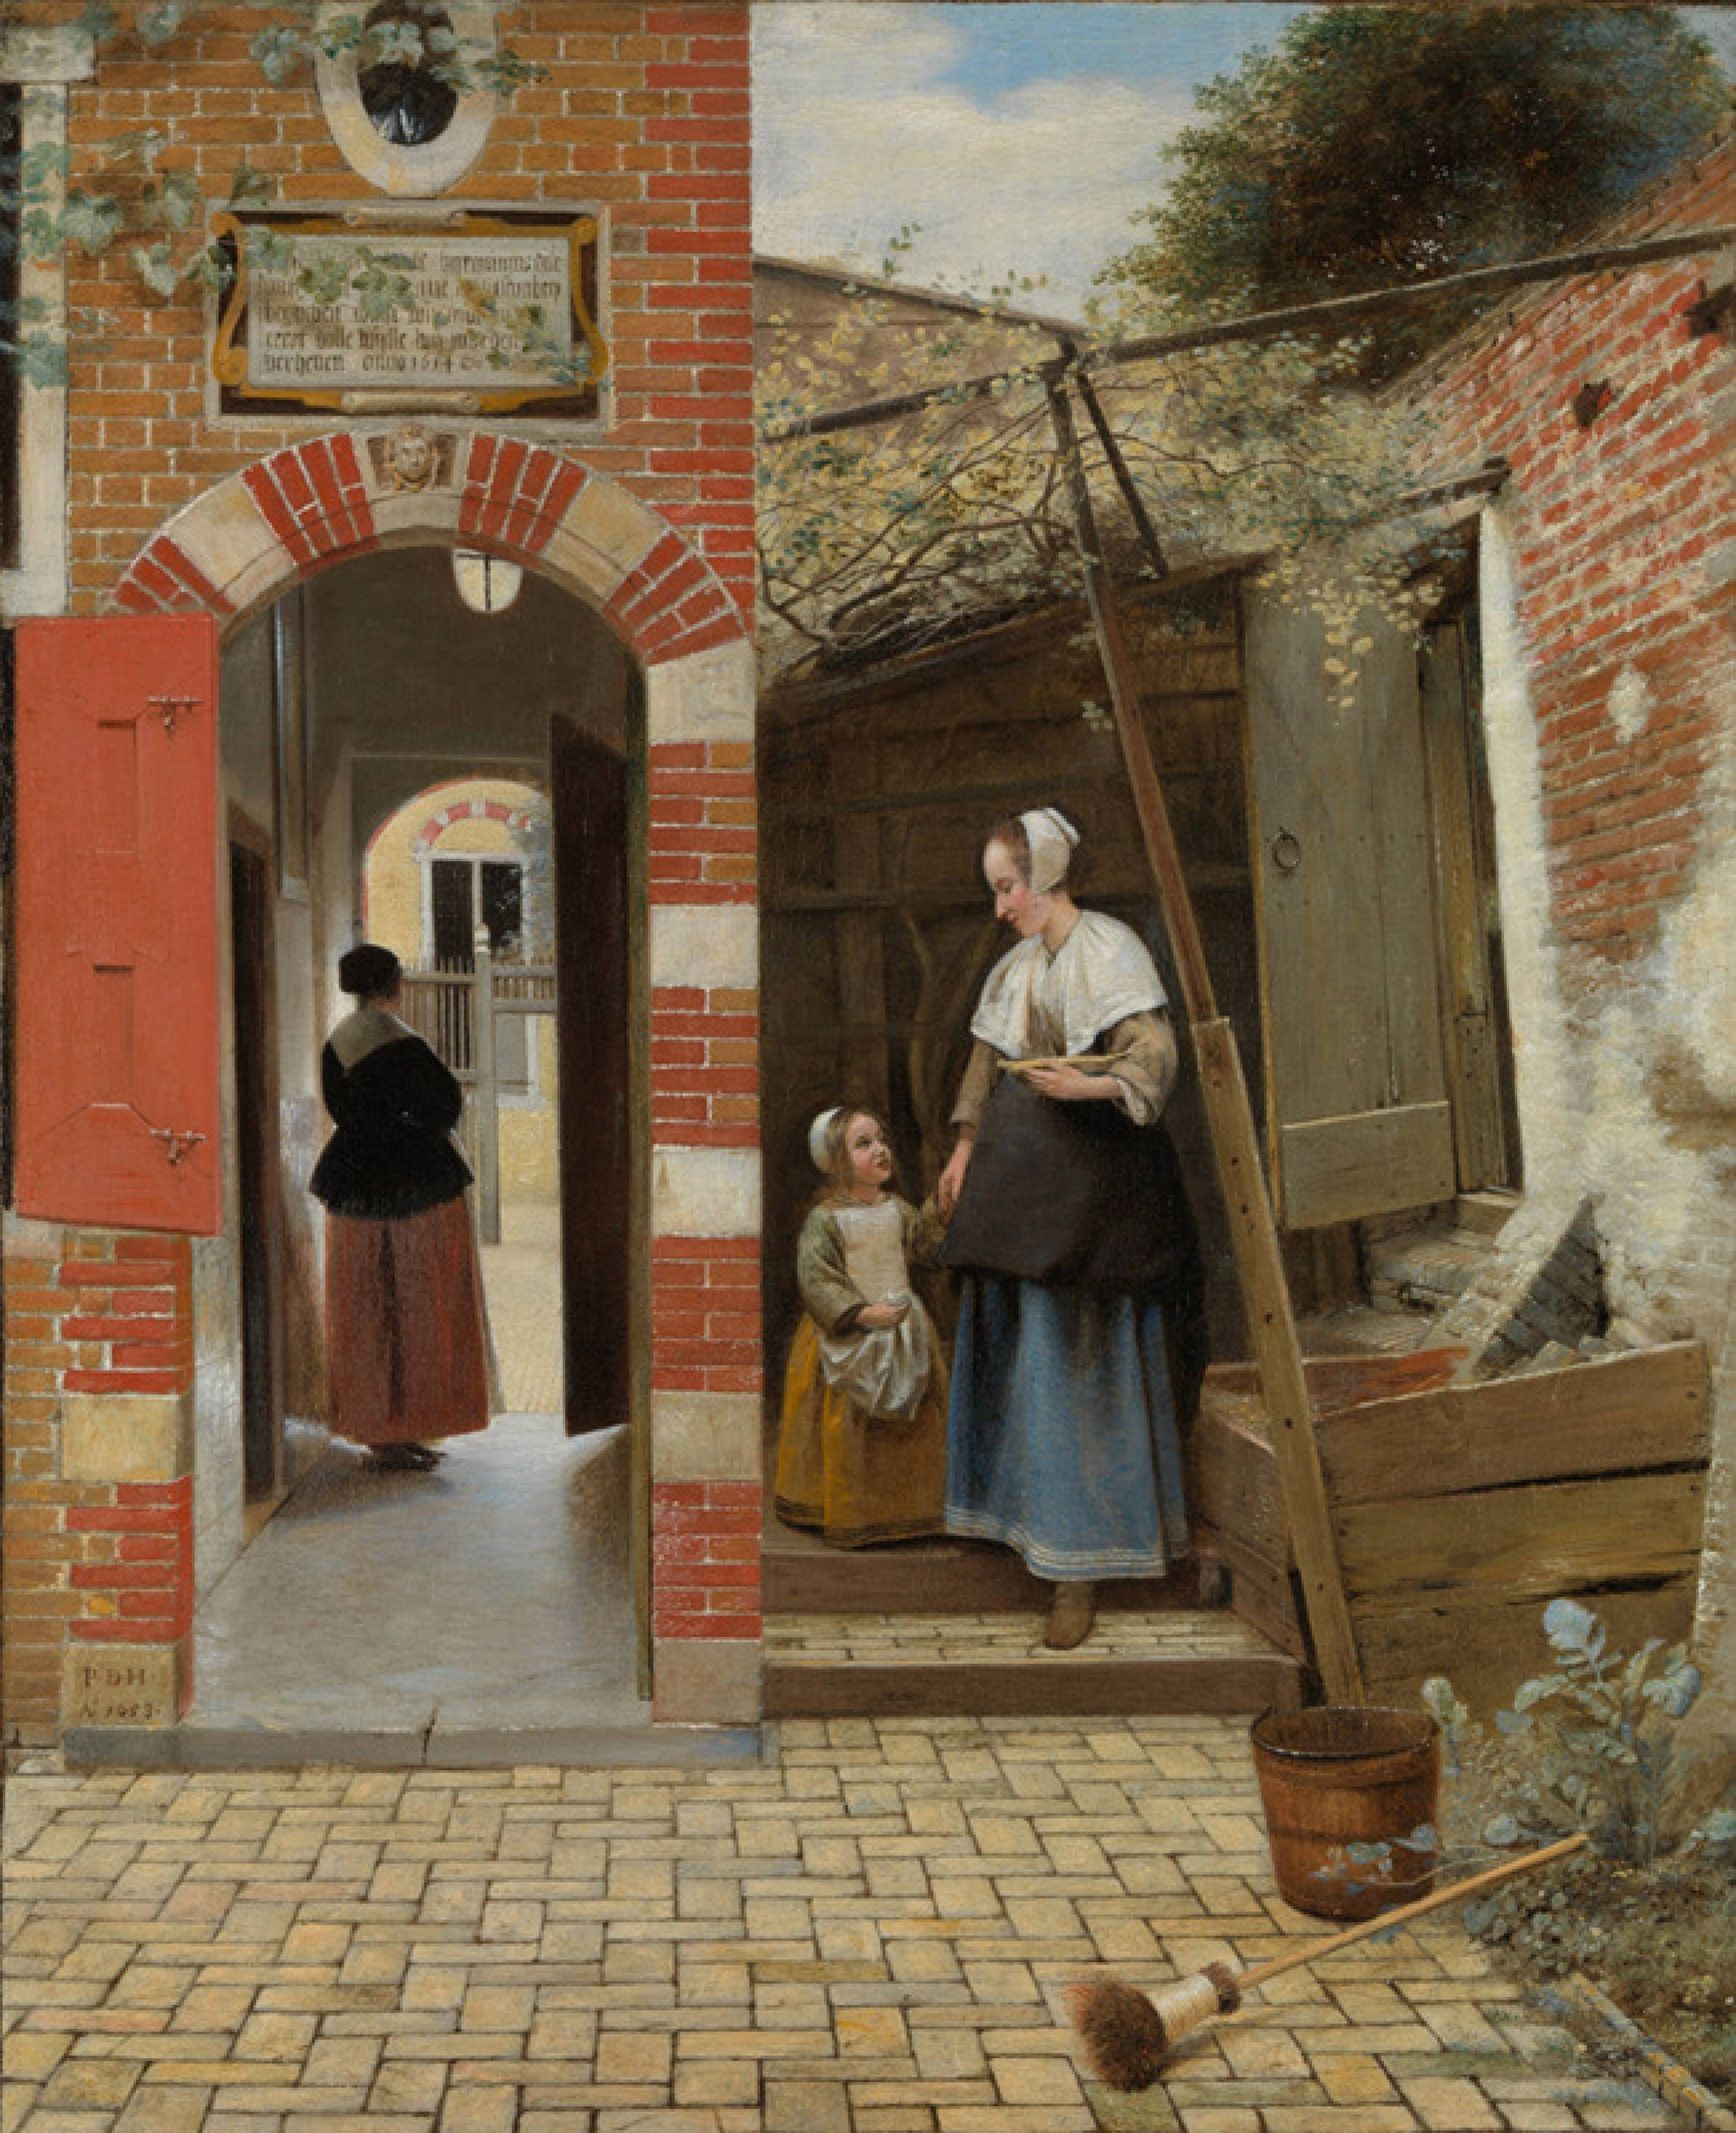 Pieter de Hooch, The Courtyard of a House in Delft, 1658 ©The National Gallery, Londres